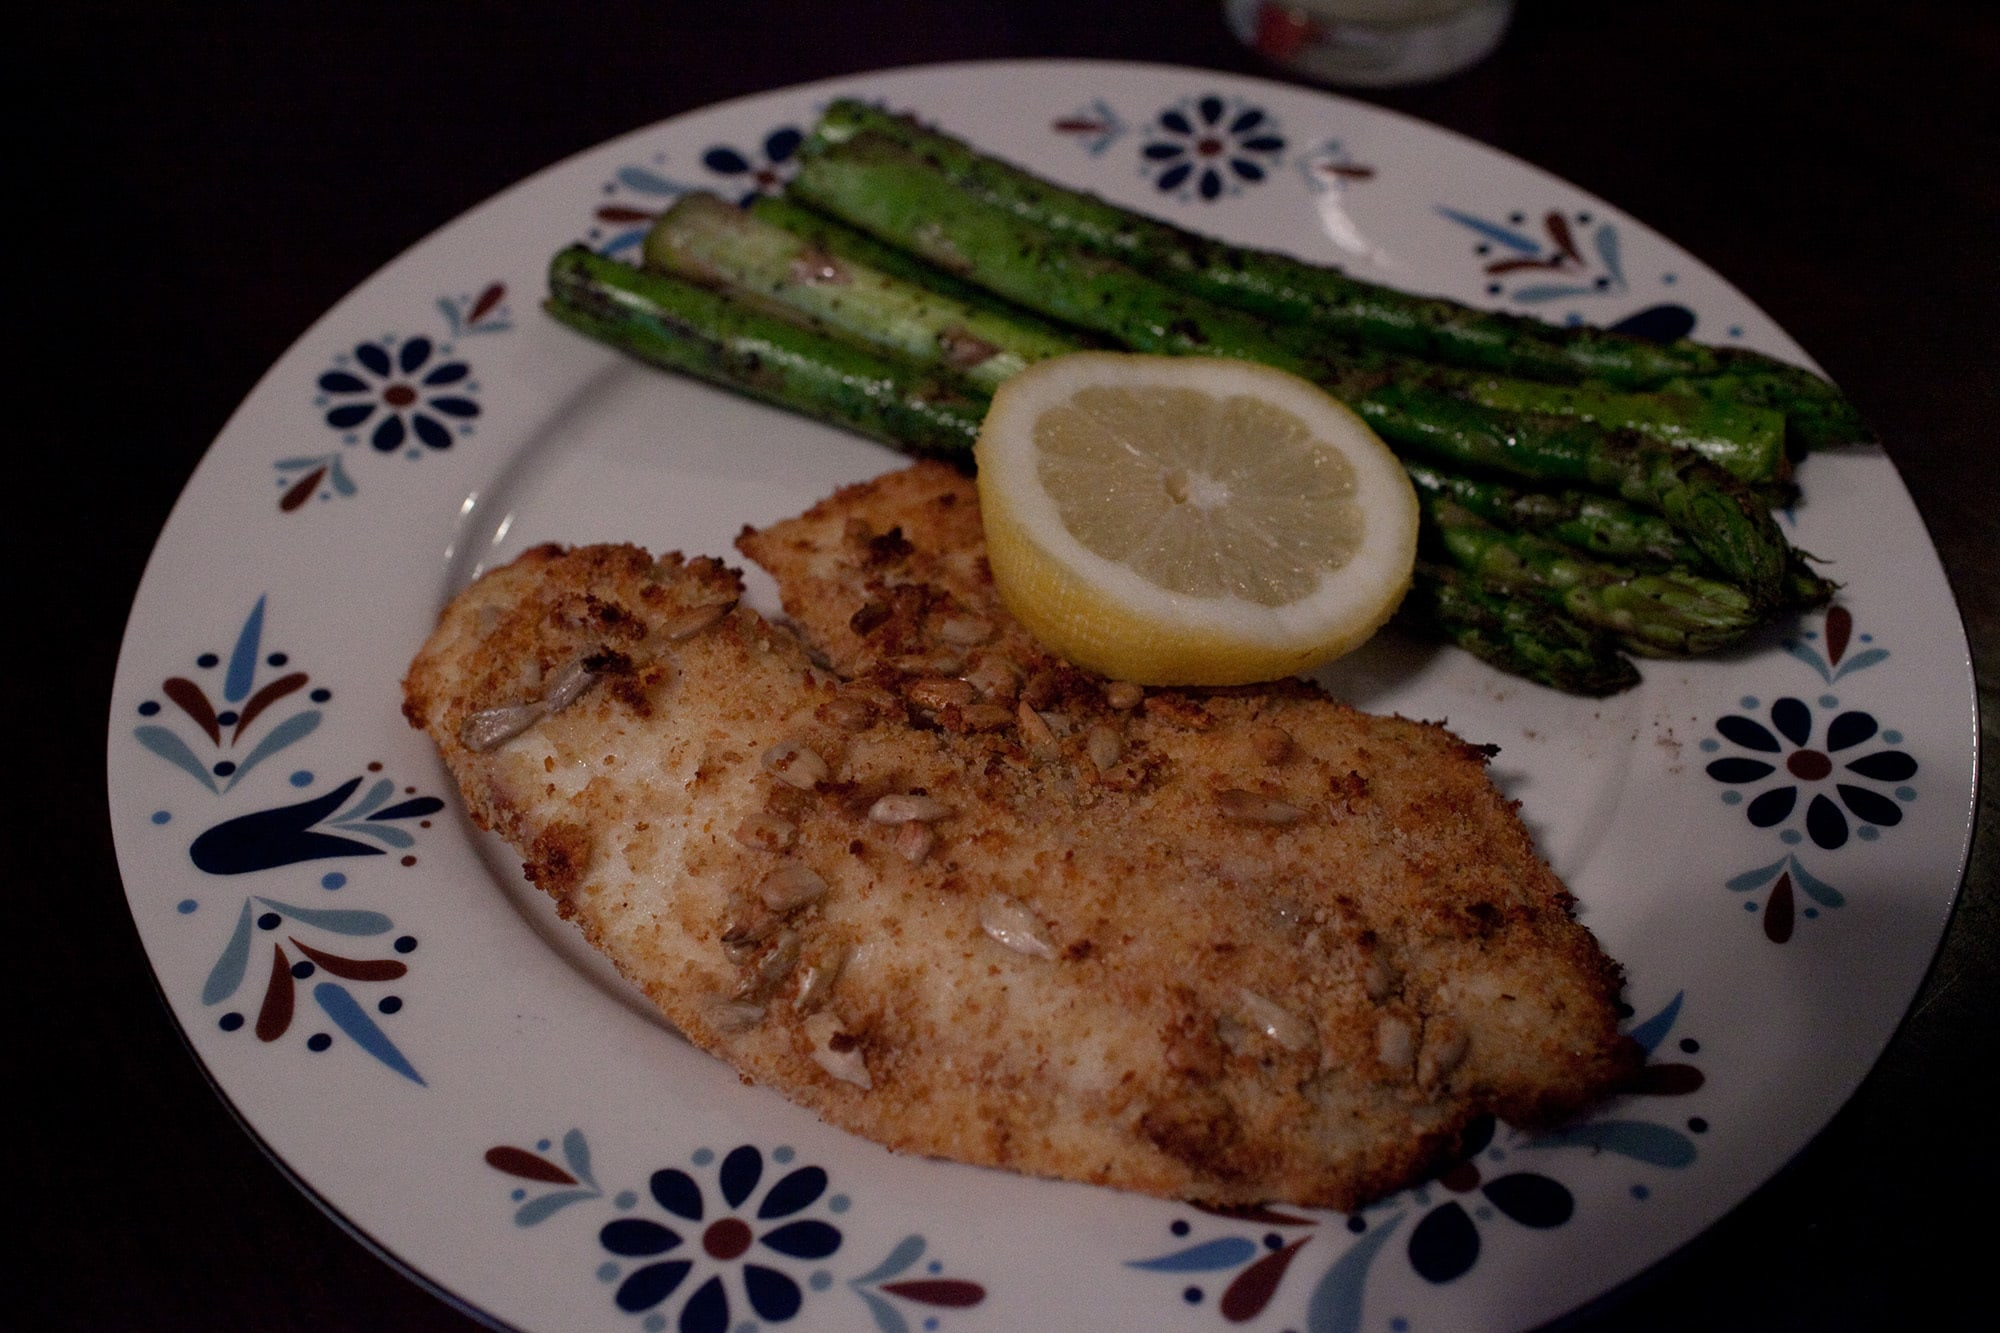 Sunflower seed crusted tilapia with asparagus.